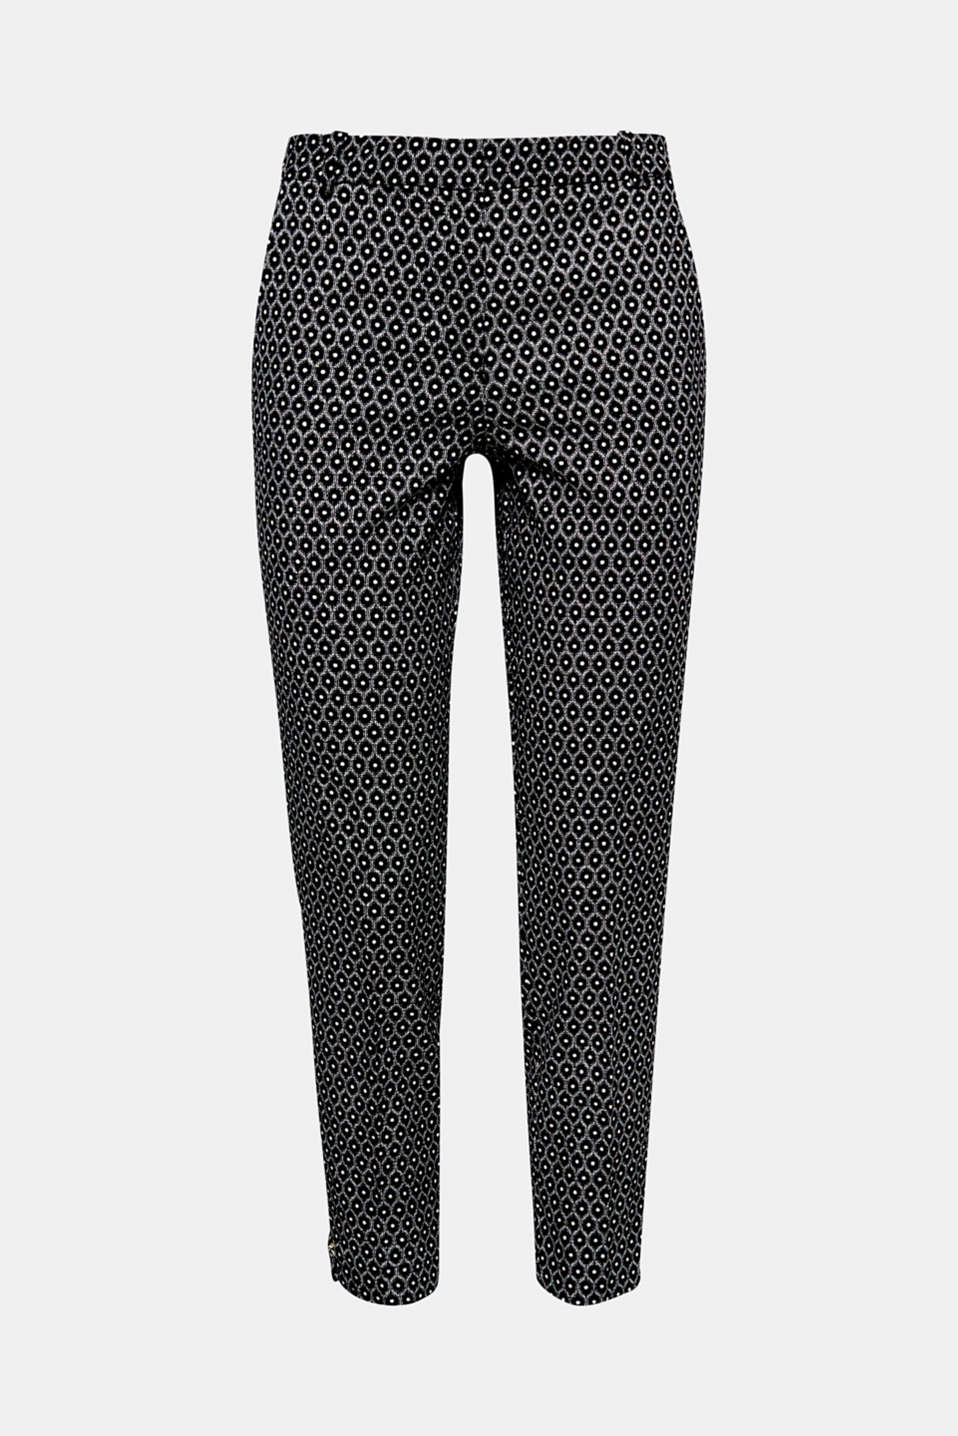 Sporty or chic? These trousers is slightly firm stretch cotton with a modern mini print, cropped leg length and side hem zips can do both!